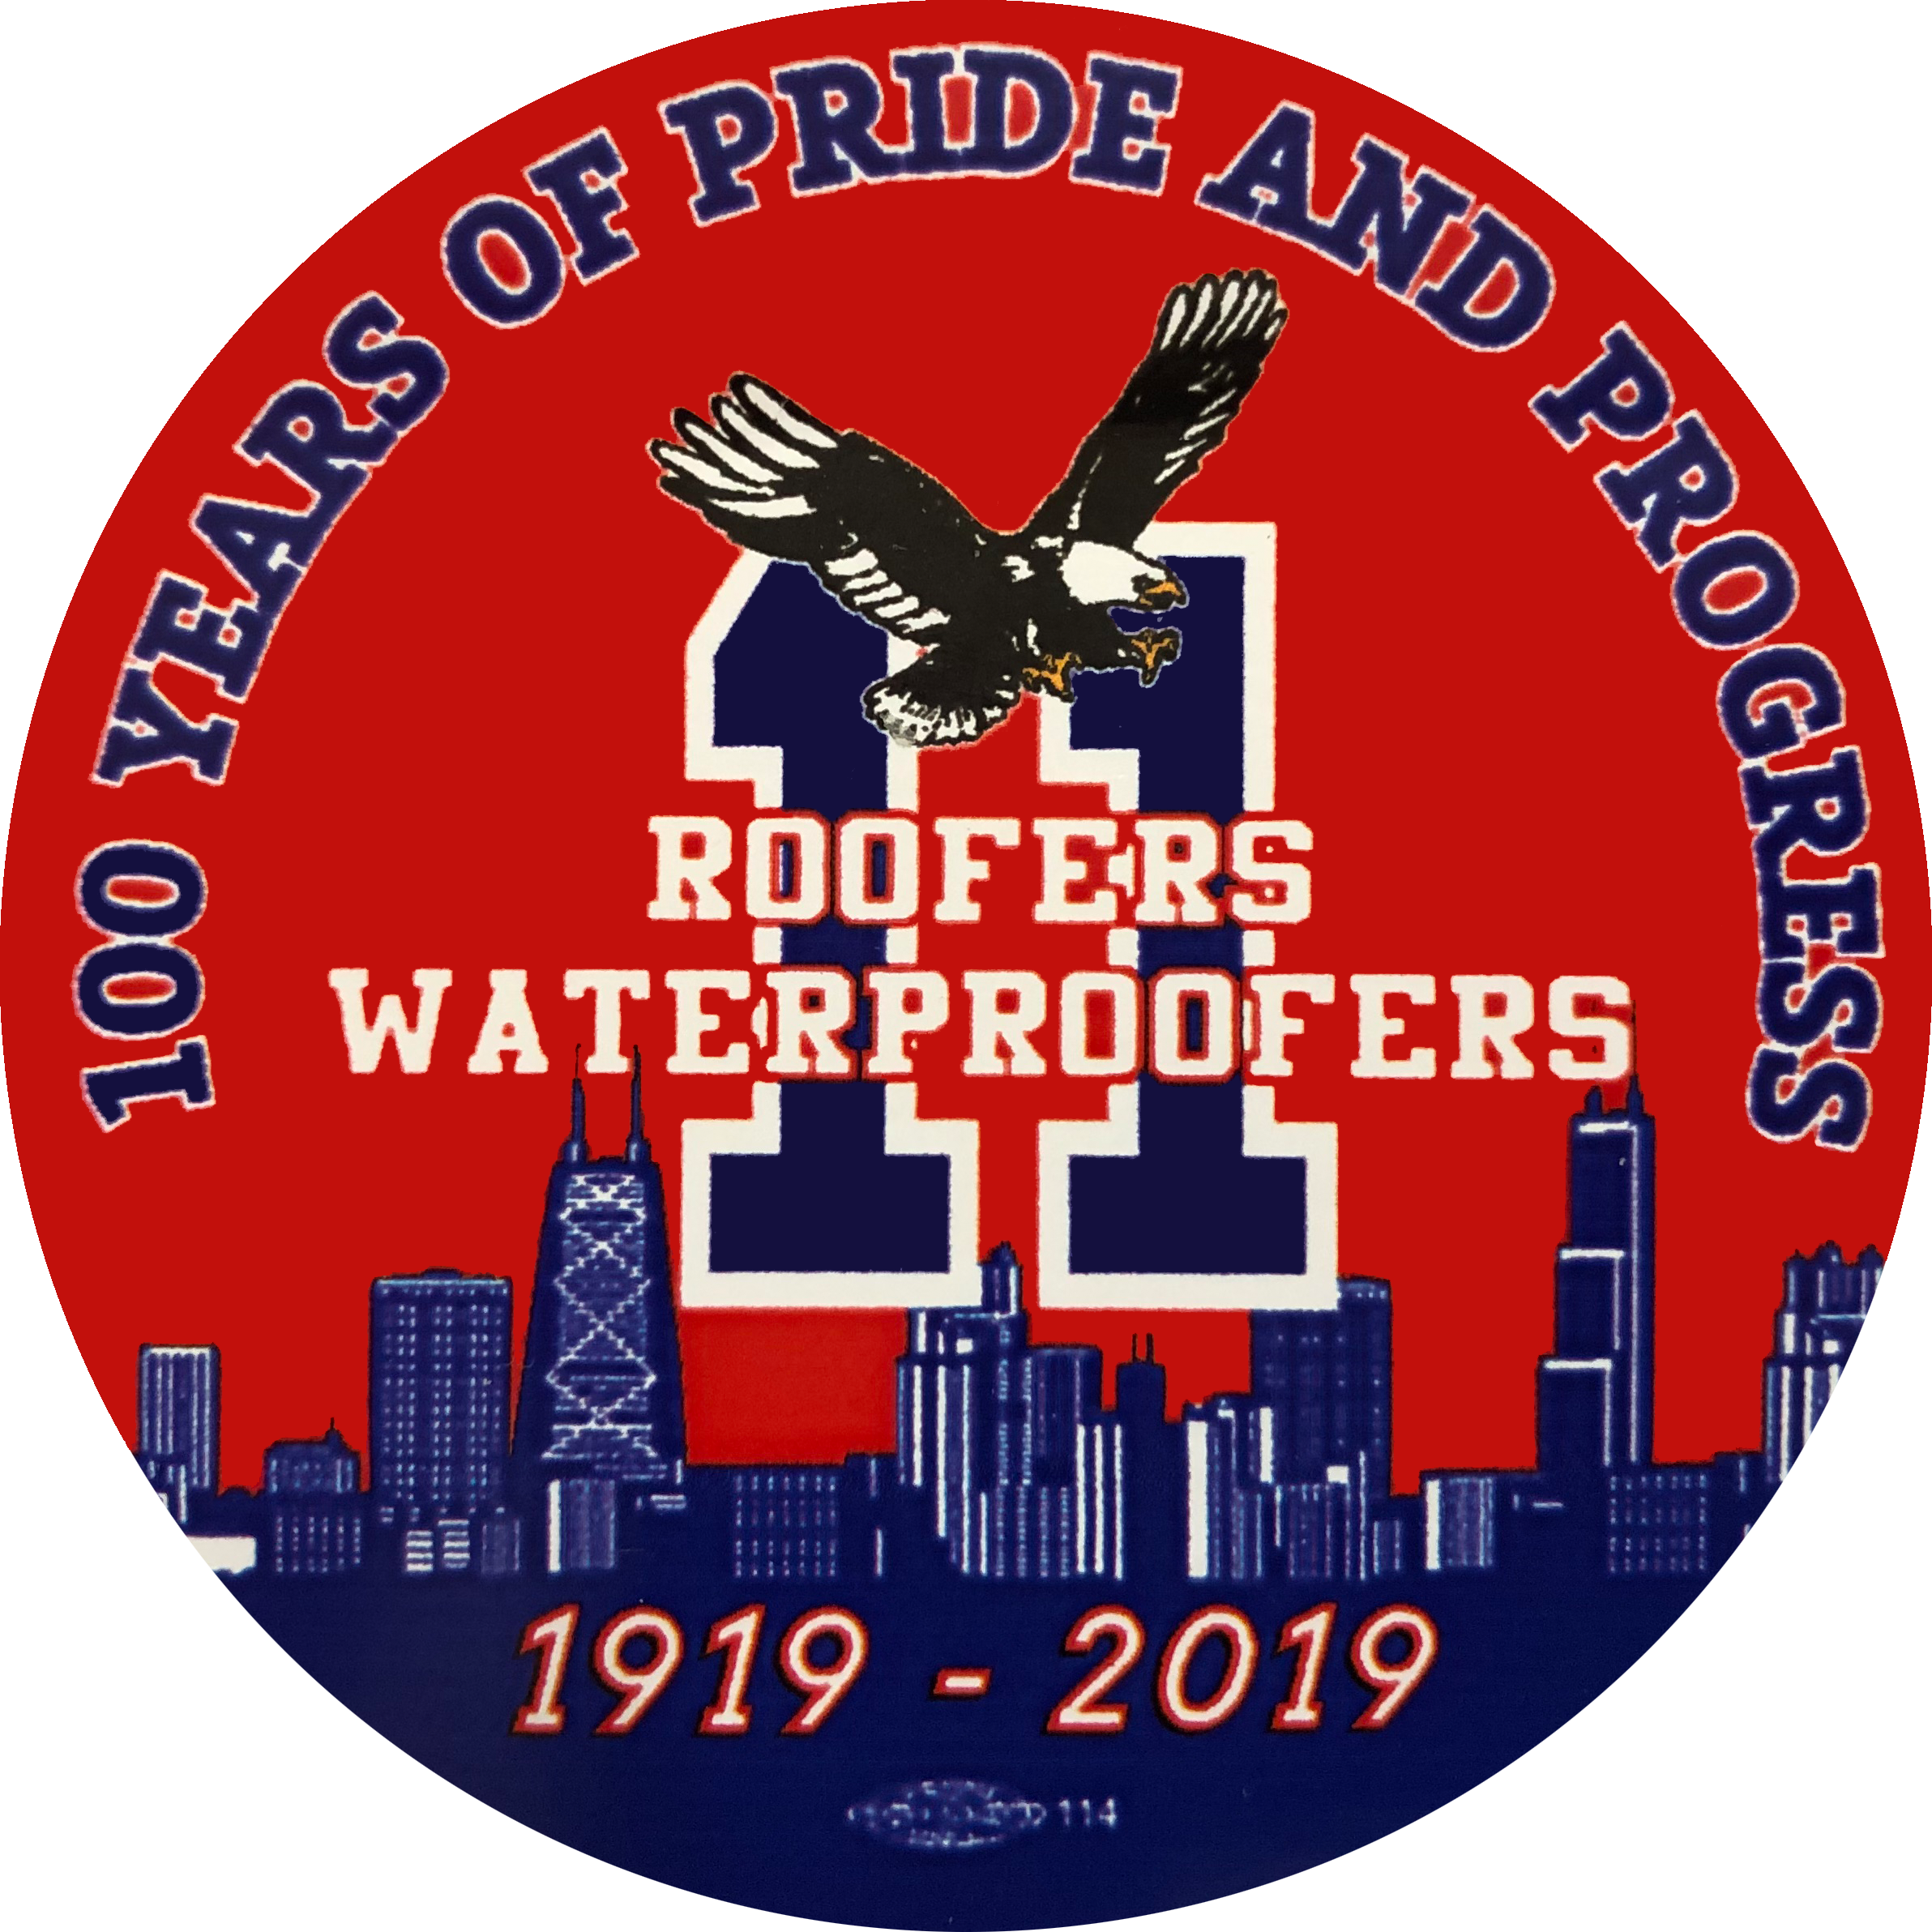 Bloody Mary Bar Sponsor (Sponsor's Banner @ Bloody Mary Bar Table) - Chicago Roofers & Waterproofers Charitable Foundation - Logo